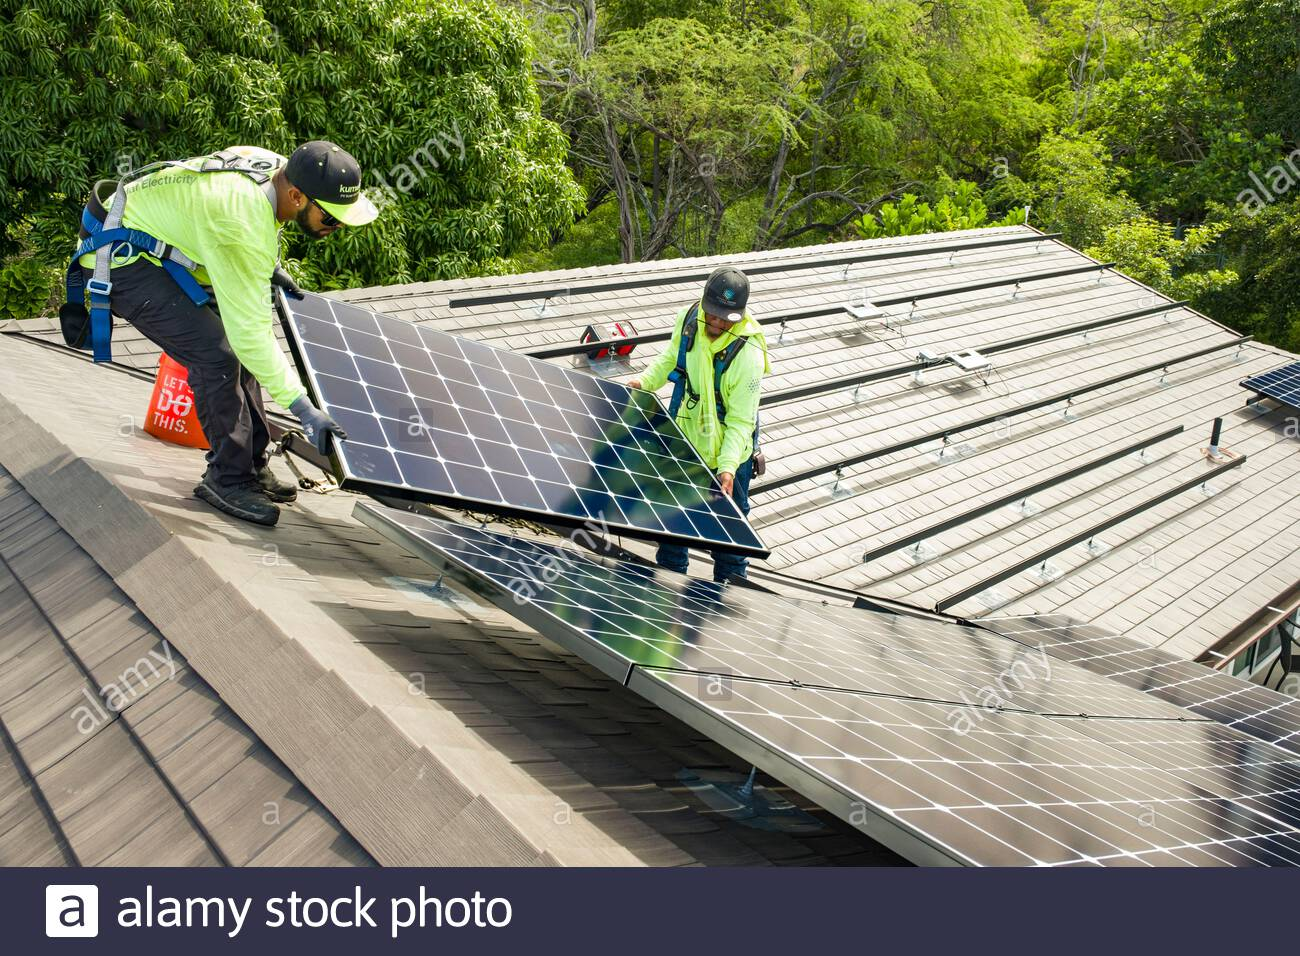 Two men working together to install photovoltaic panel onto aluminum rails on residential rooftop, Honolulu, Oahu, Hawaii, USA Stock Photo